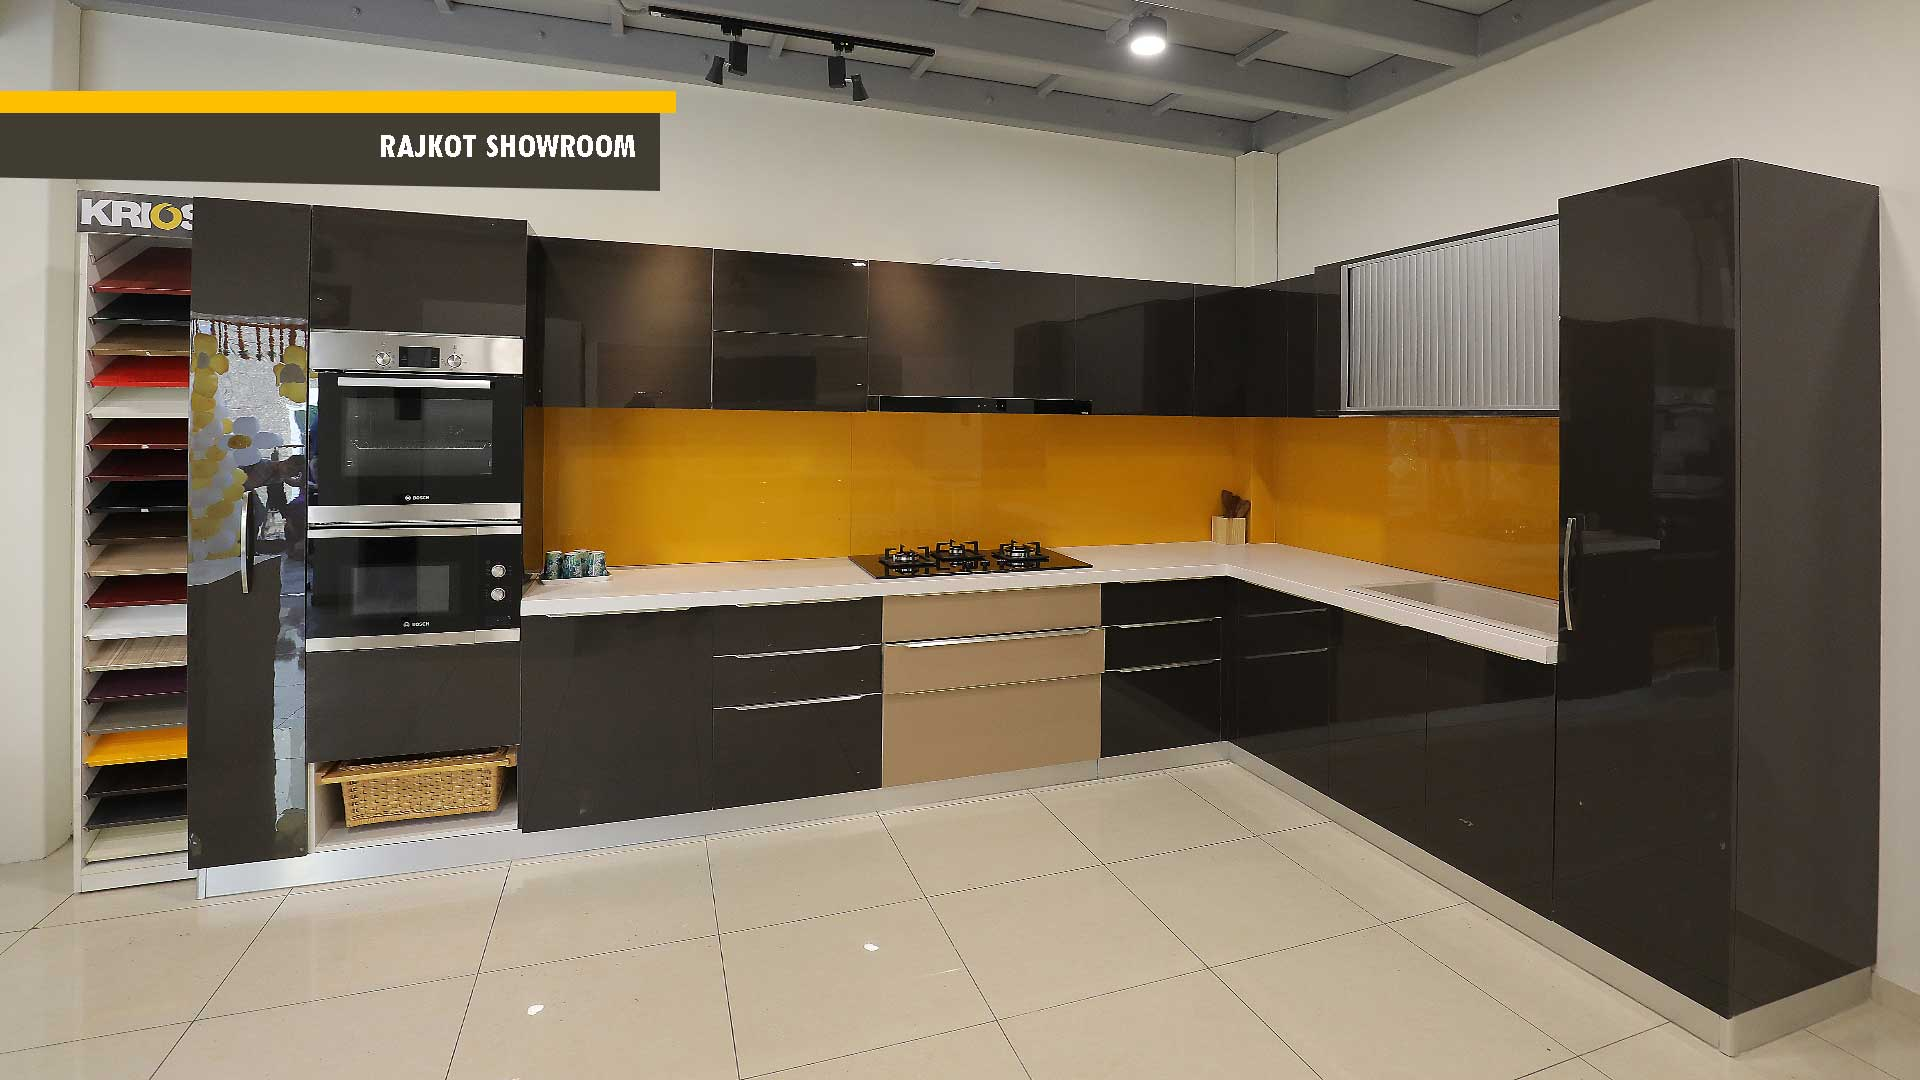 Modular kitchens ahmedabad buy modular kitchens online Kitchen designs pictures free